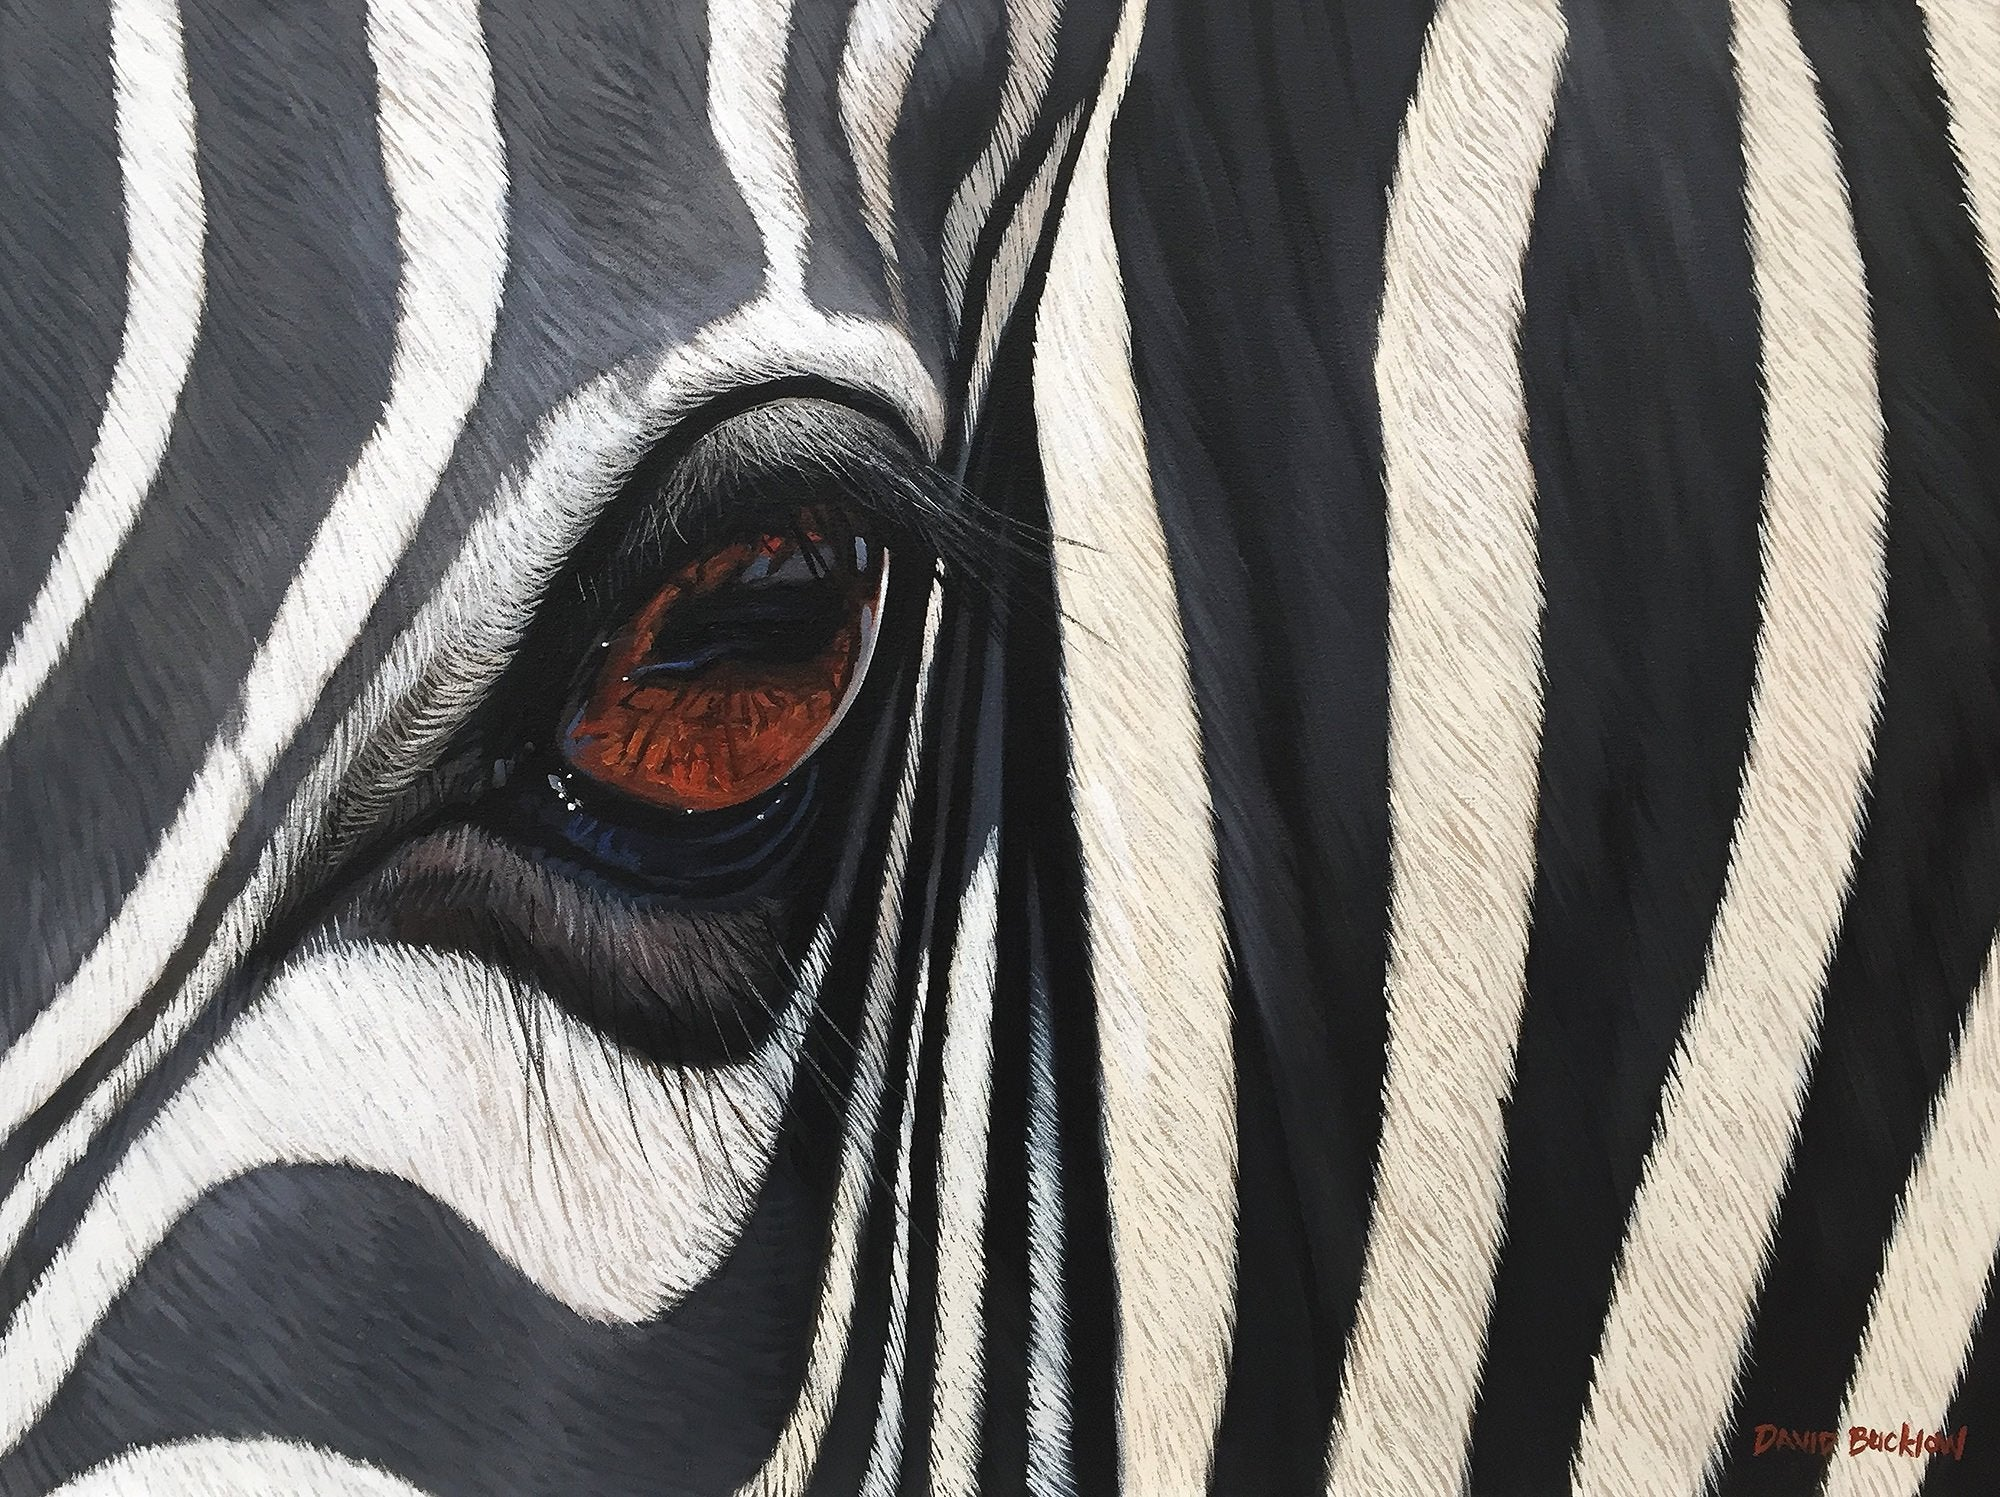 South African Limited Editions by David Bucklow - Shimmer - Zebra Up Close - Fine Art Portfolio